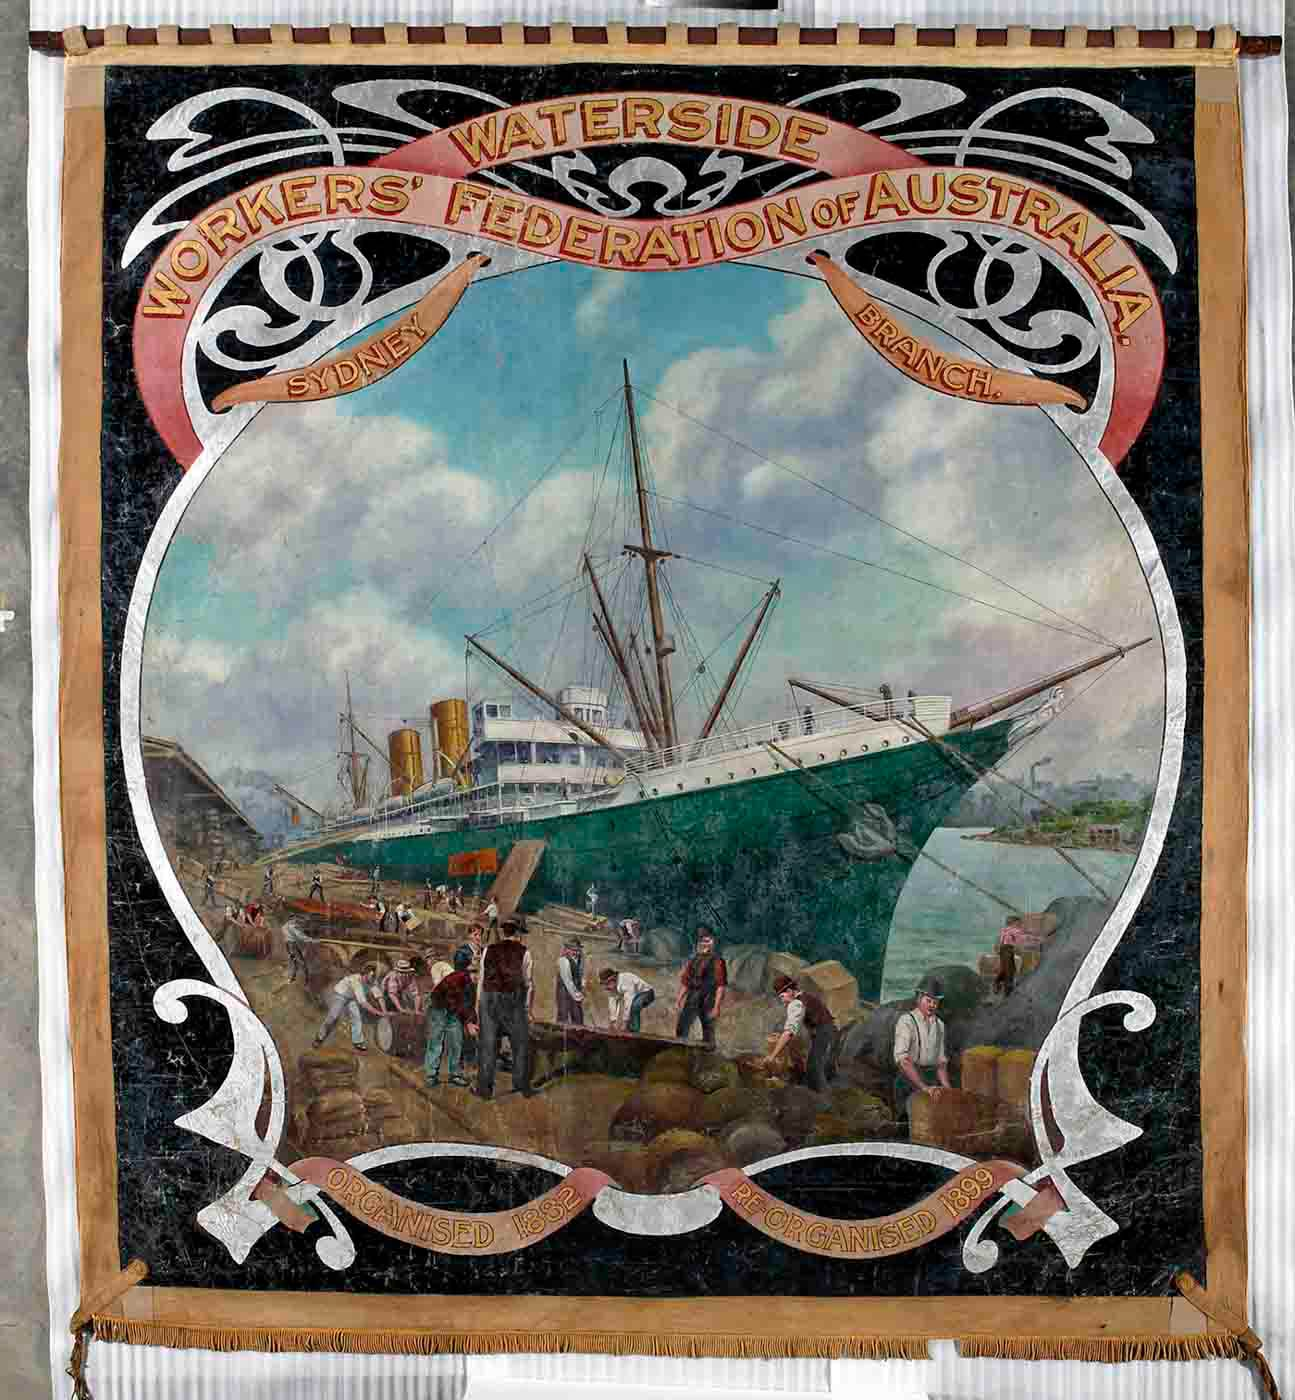 Large almost square banner painted in oil colours, showing a central image of a ship docked beside a busy wharf. 'Waterside Workers' Federation of Australia' and 'Sydney branch' is written at the top. At the bottom the text reads 'Organised 1882', 'Re-organised 1899'.